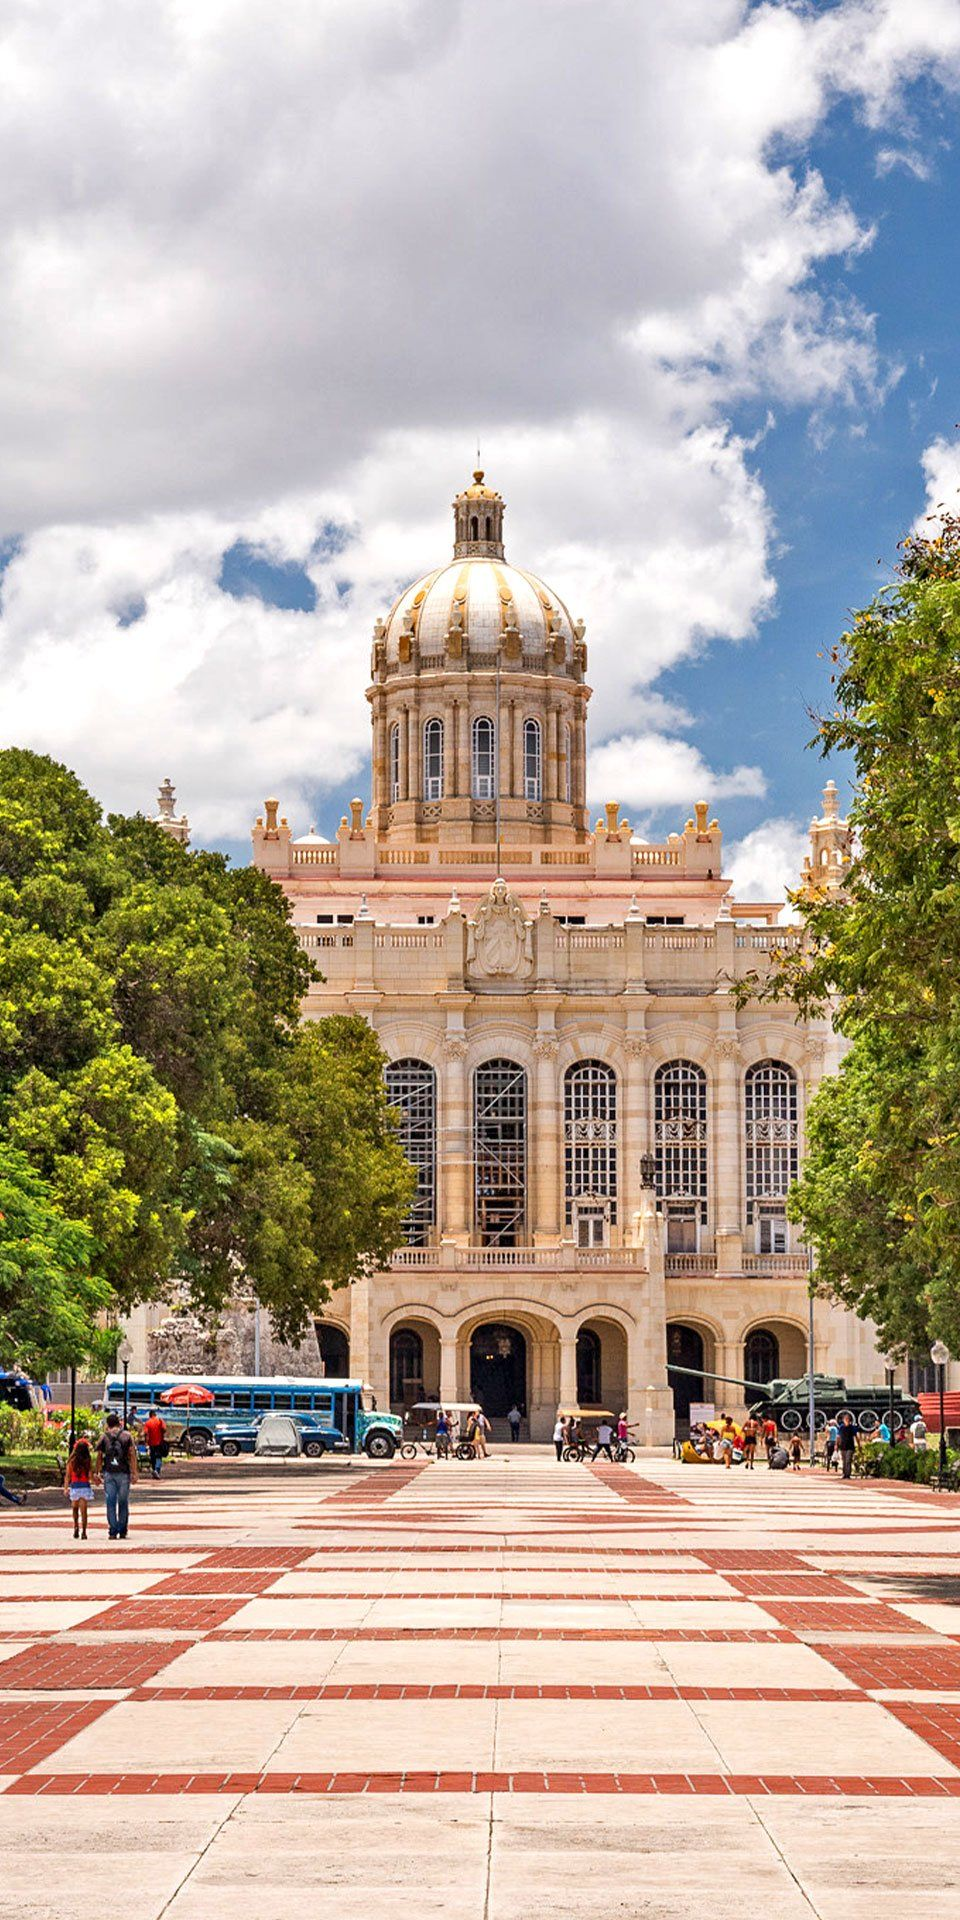 Havana, Cuba   What would you do with 8 hours in Cuba? Step into history. Walk around Old Havana to check out historical architecture and culture, and visit local landmarks such as the Museum of the Revolution to learn more about the island's past.